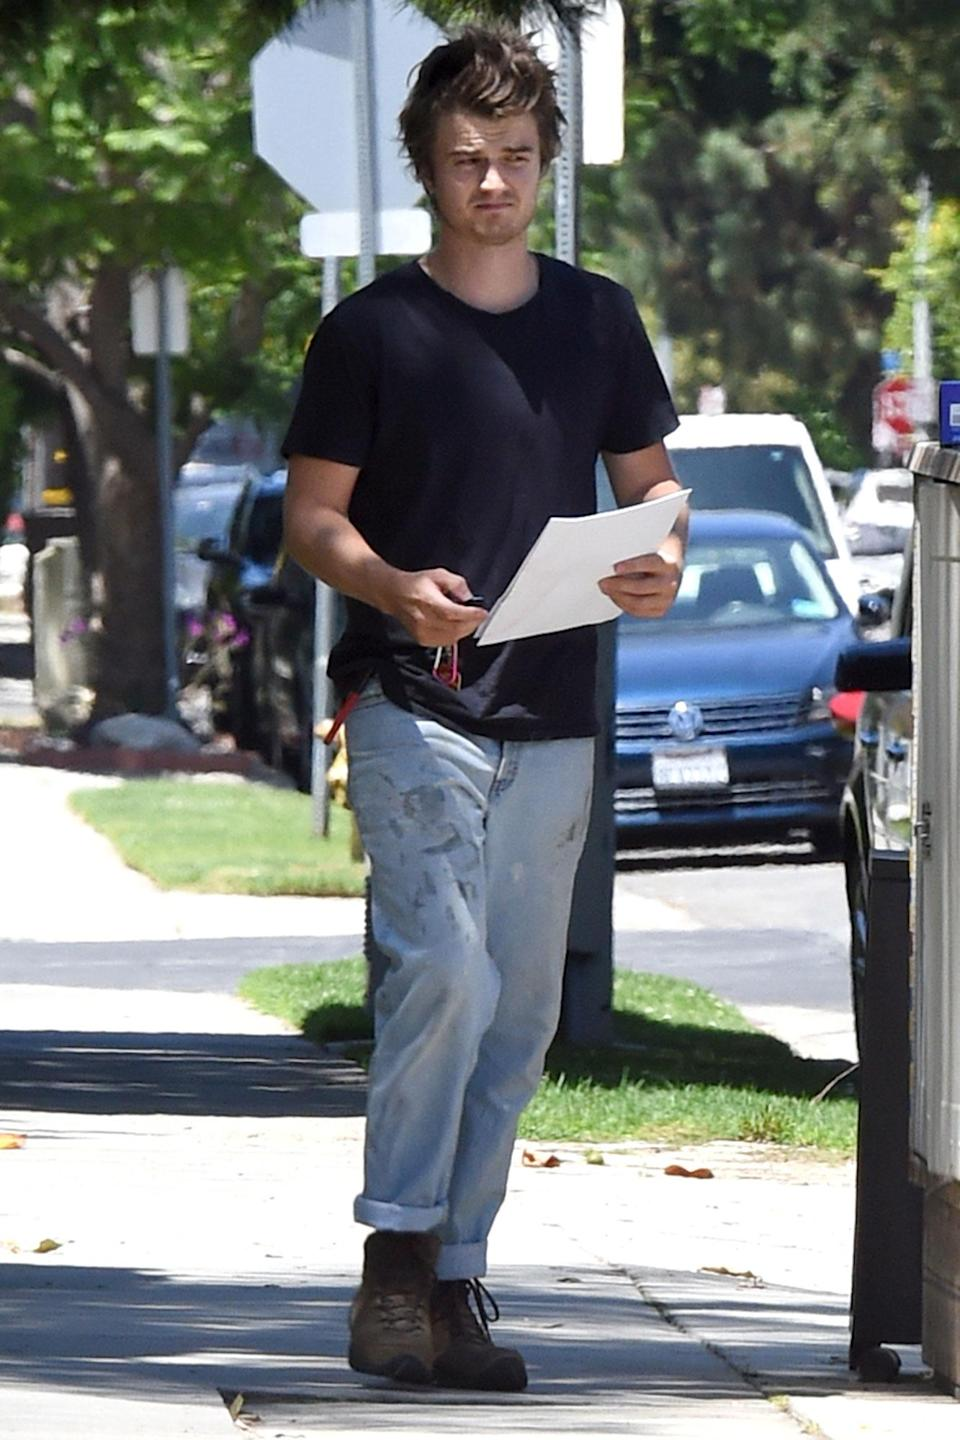 <p>Joe Keery stepped out with some paperwork in hand in Los Angeles as he dressed in a casual outfit.</p>